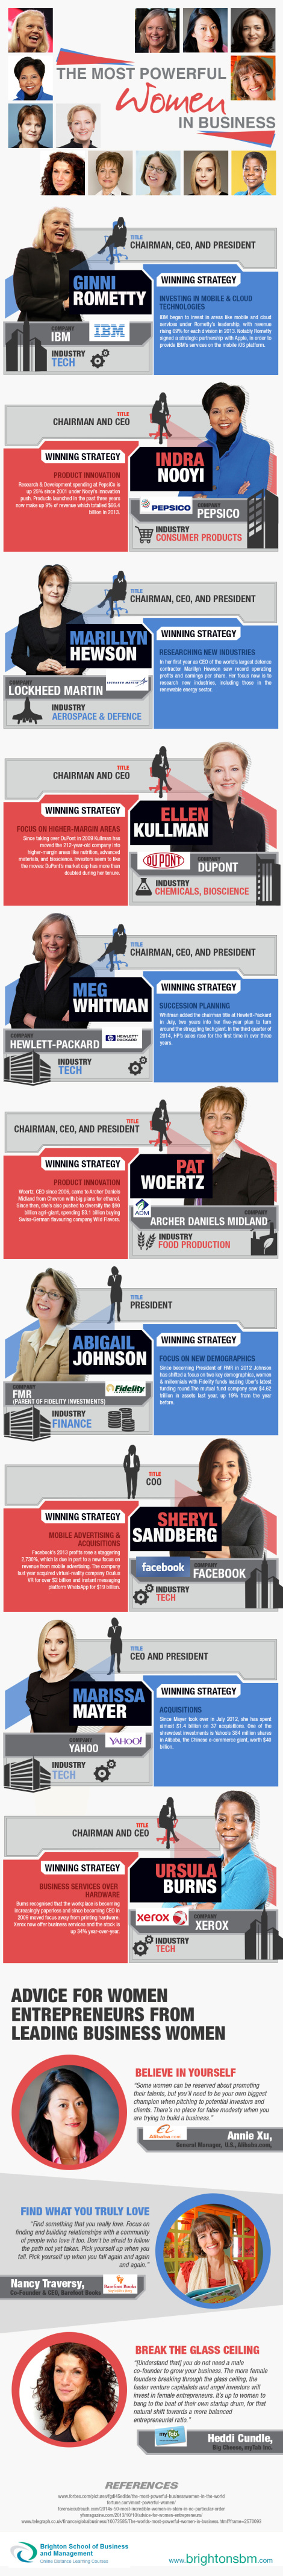 The most powerful women in business and management